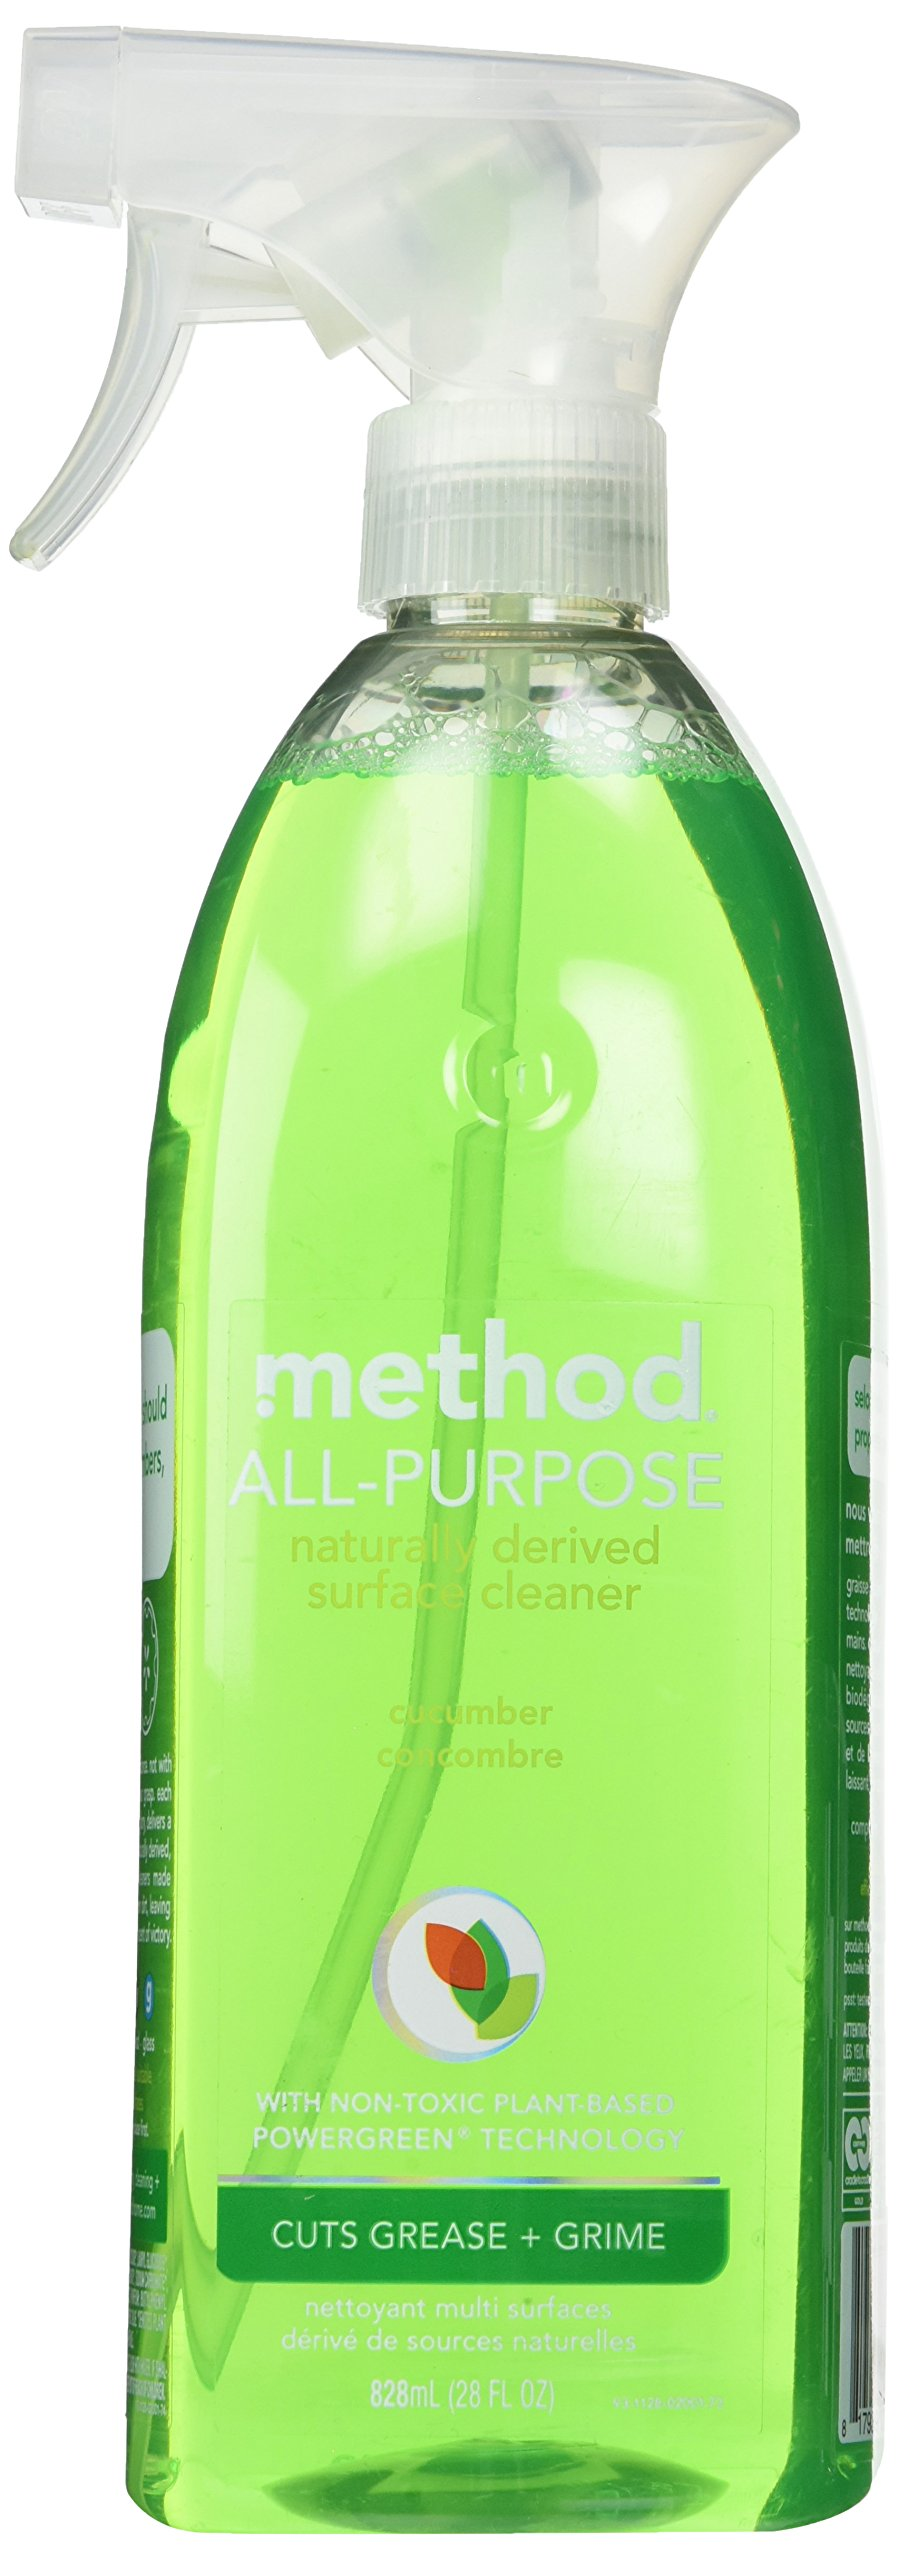 Amazon Com Method All Purpose Natural Surface Cleaning